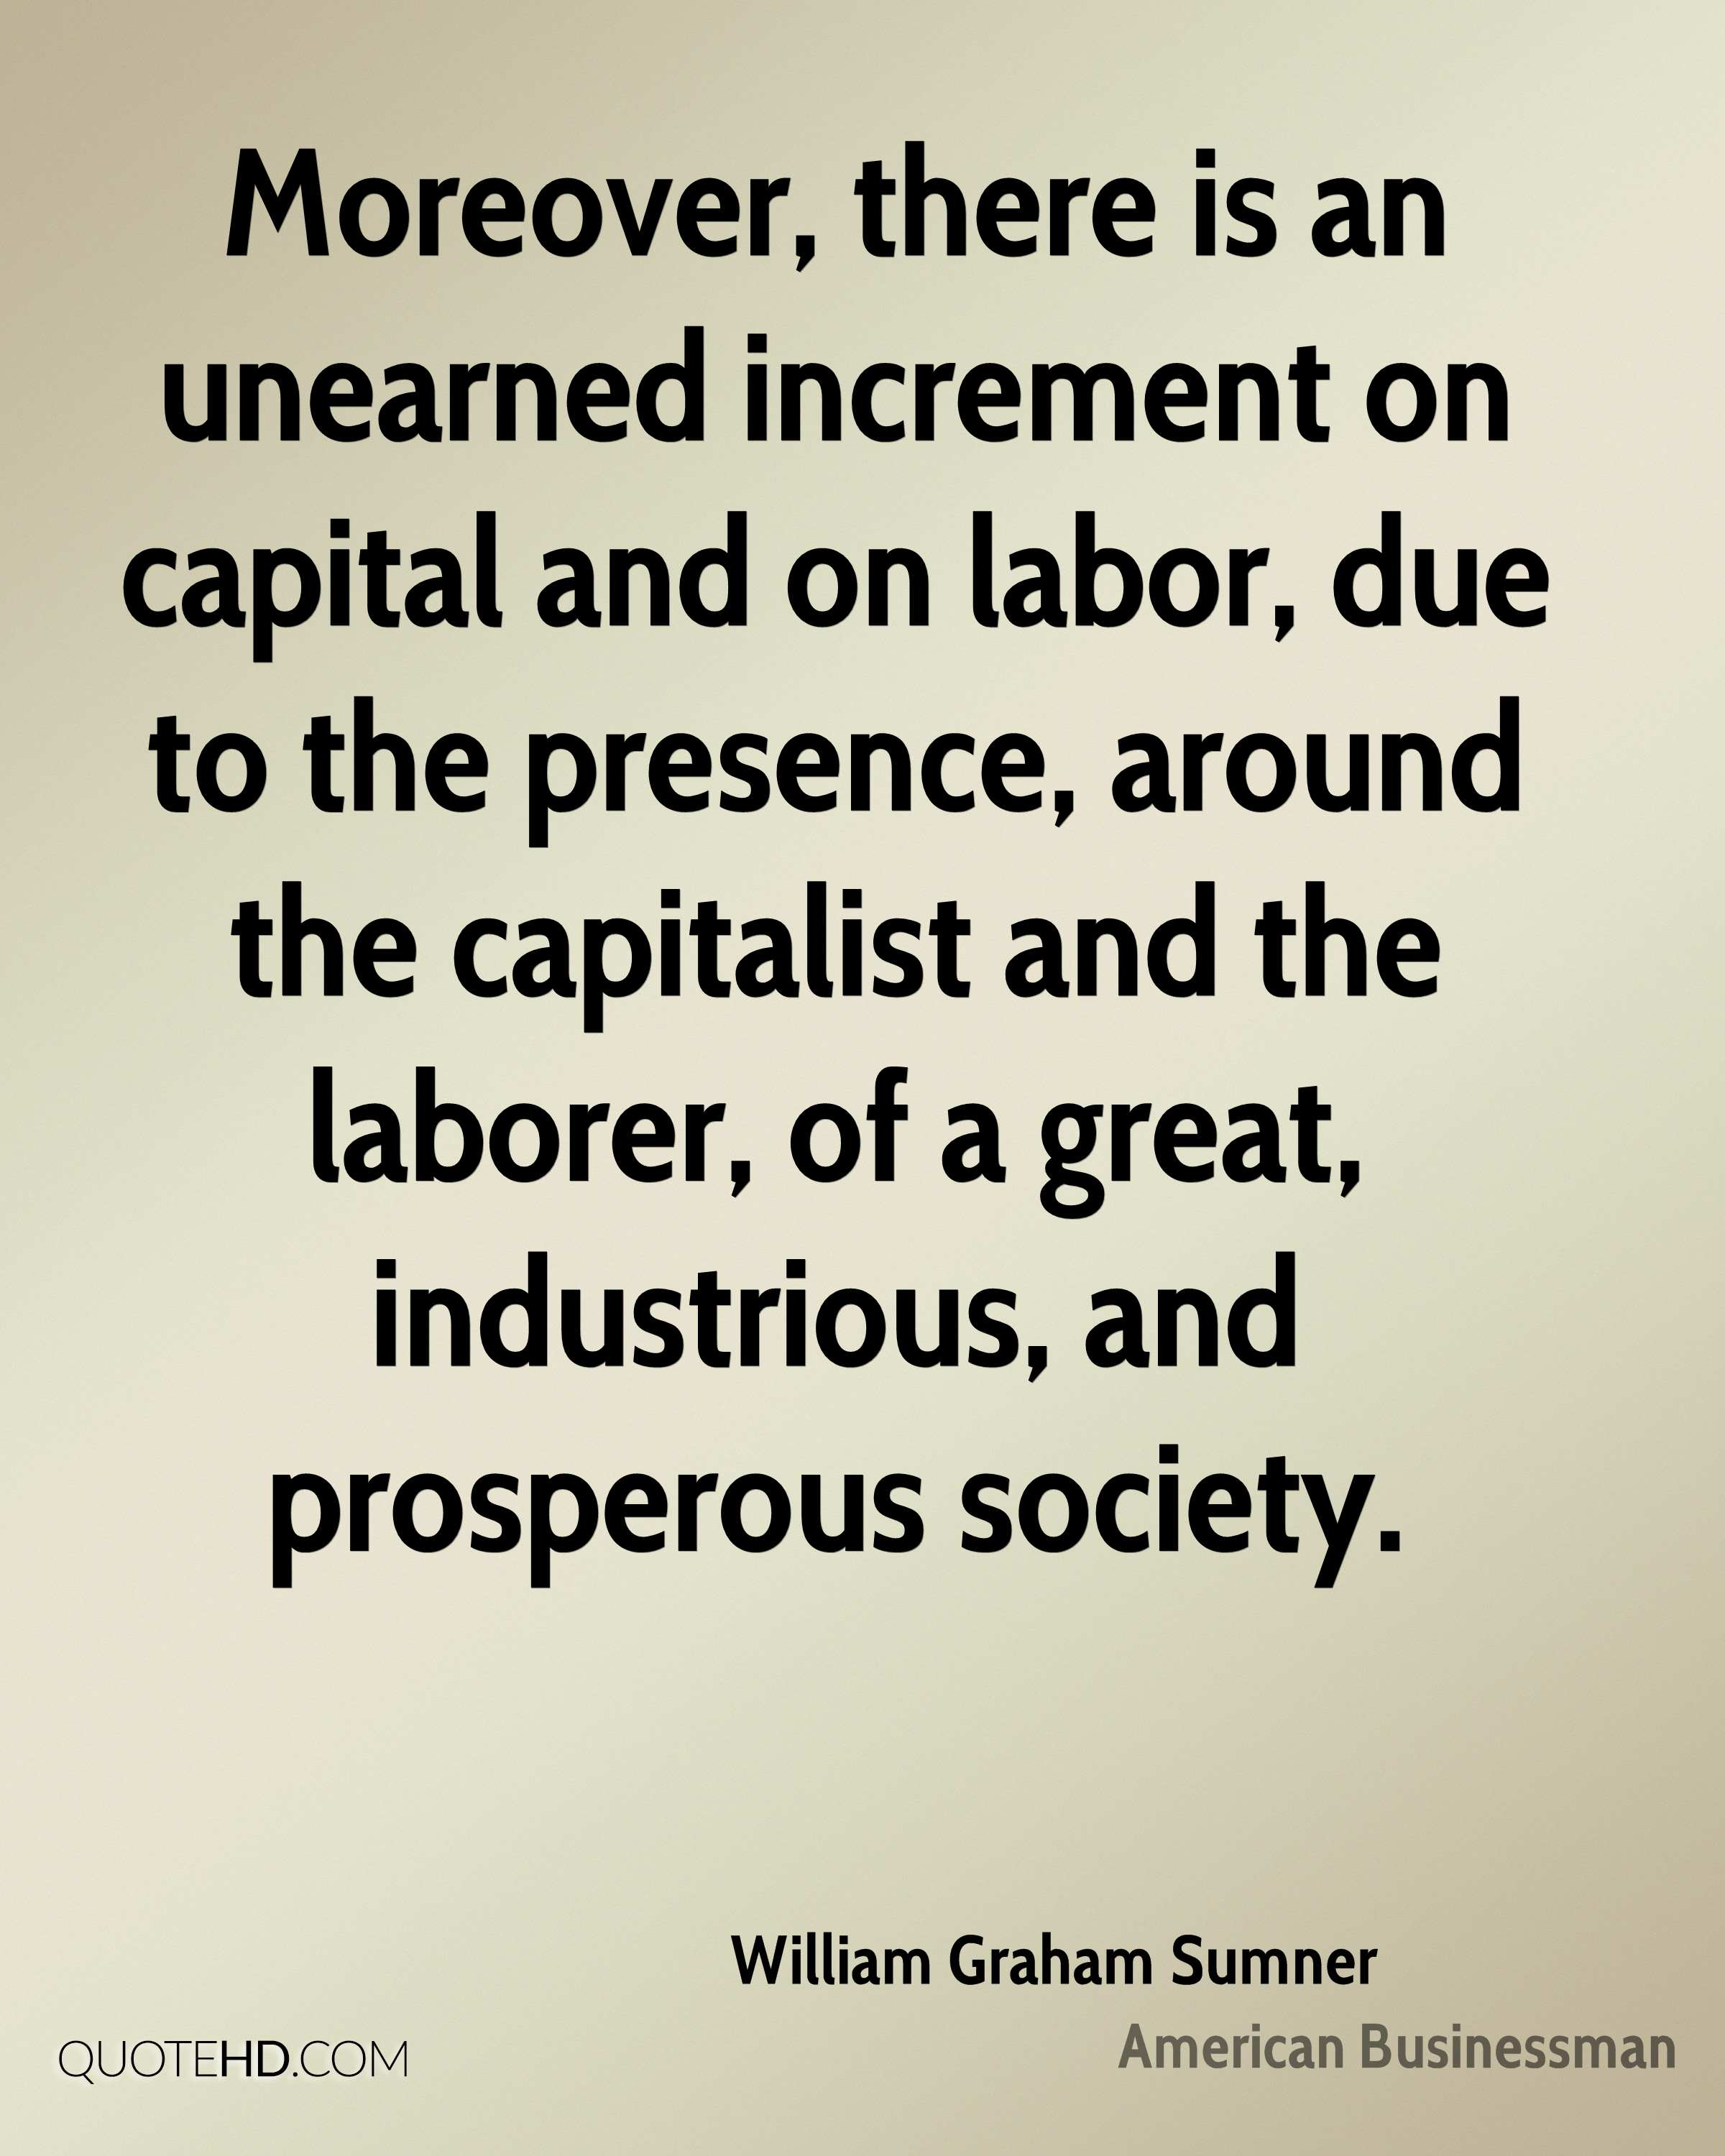 Moreover, there is an unearned increment on capital and on labor, due to the presence, around the capitalist and the laborer, of a great, industrious, and prosperous society.